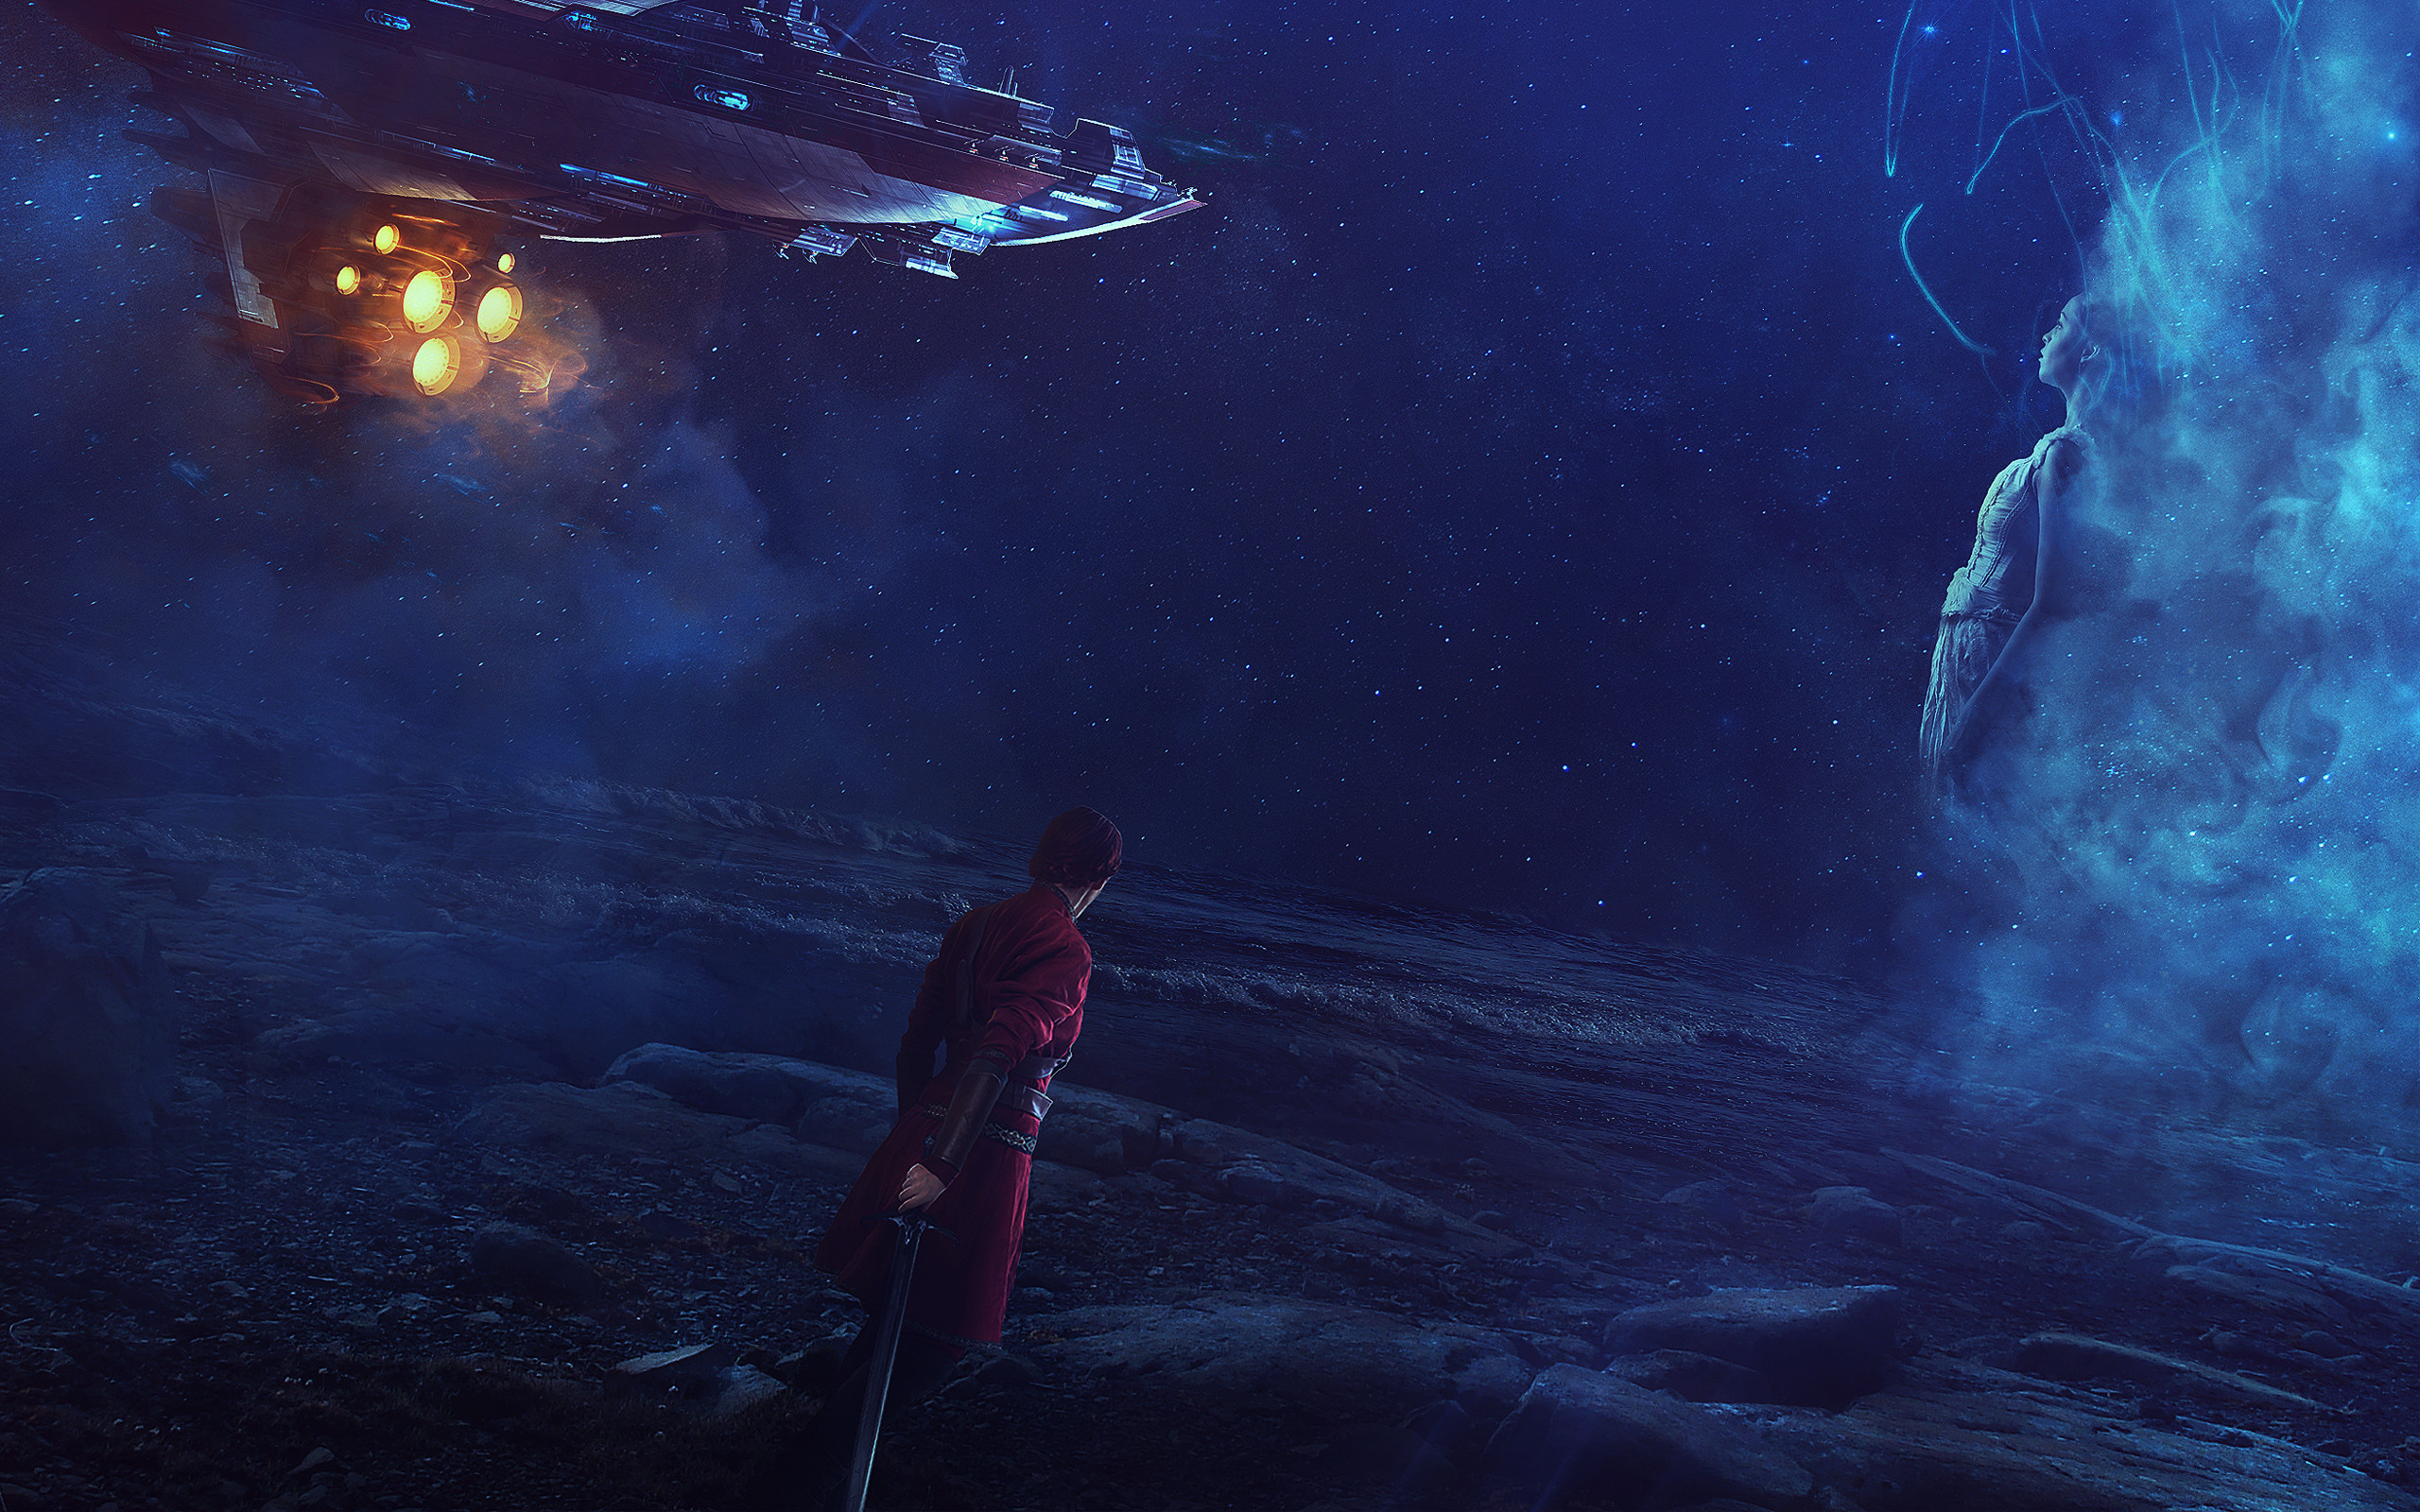 Res: 2560x1600, Tags: Space Fantasy